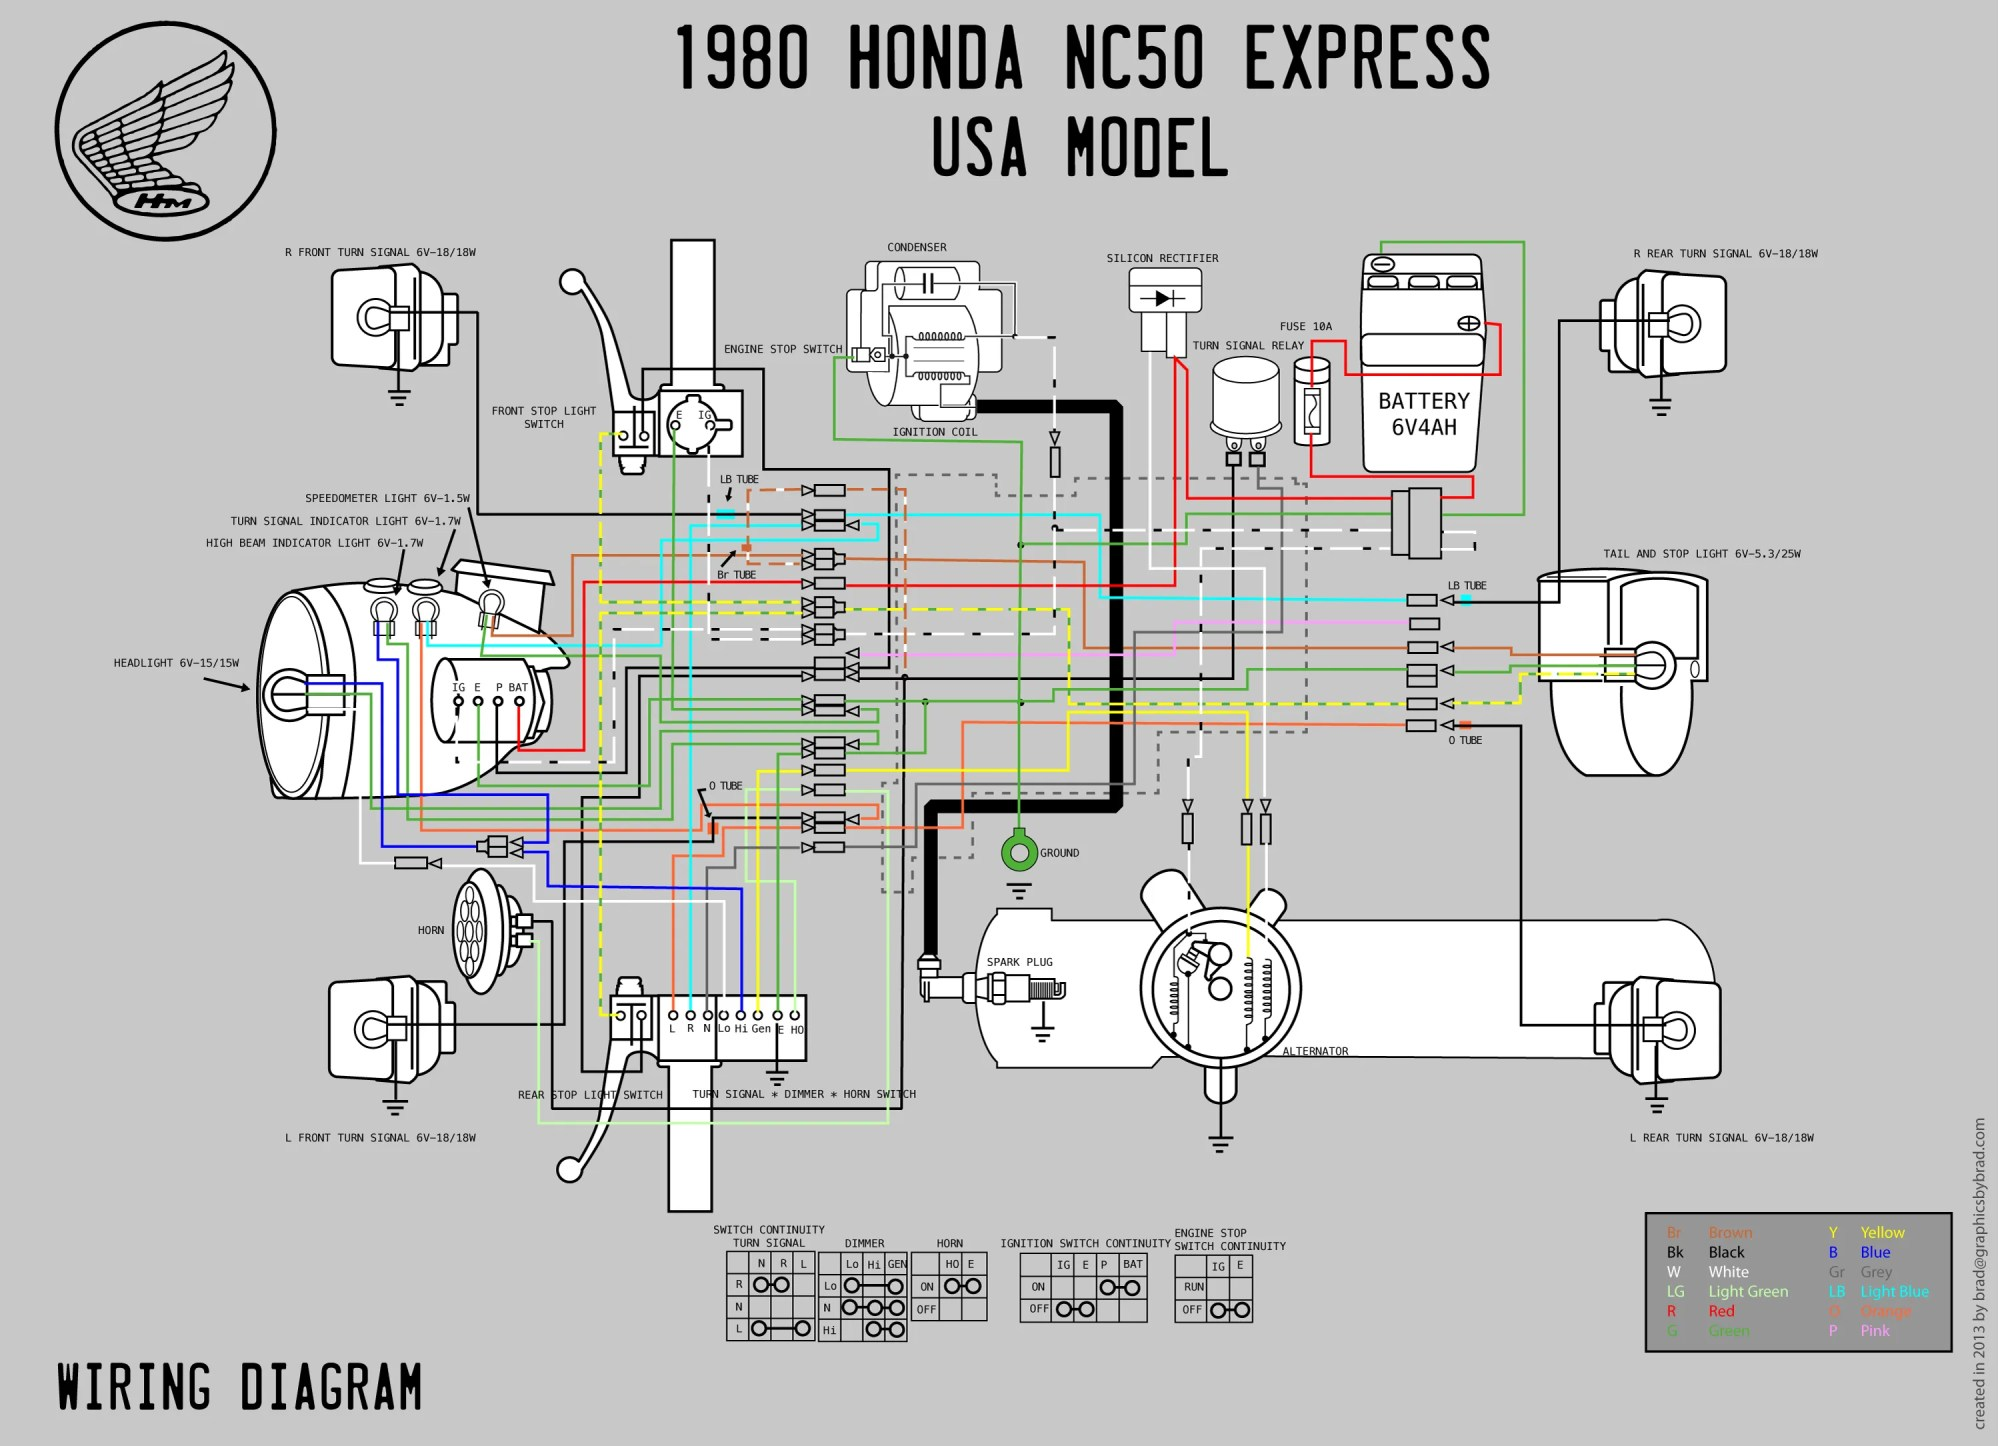 hight resolution of 1980 honda nc50 wiring diagram moped wiki mercury outboard wiring diagram 1980 nc50 wiring lrg jpg